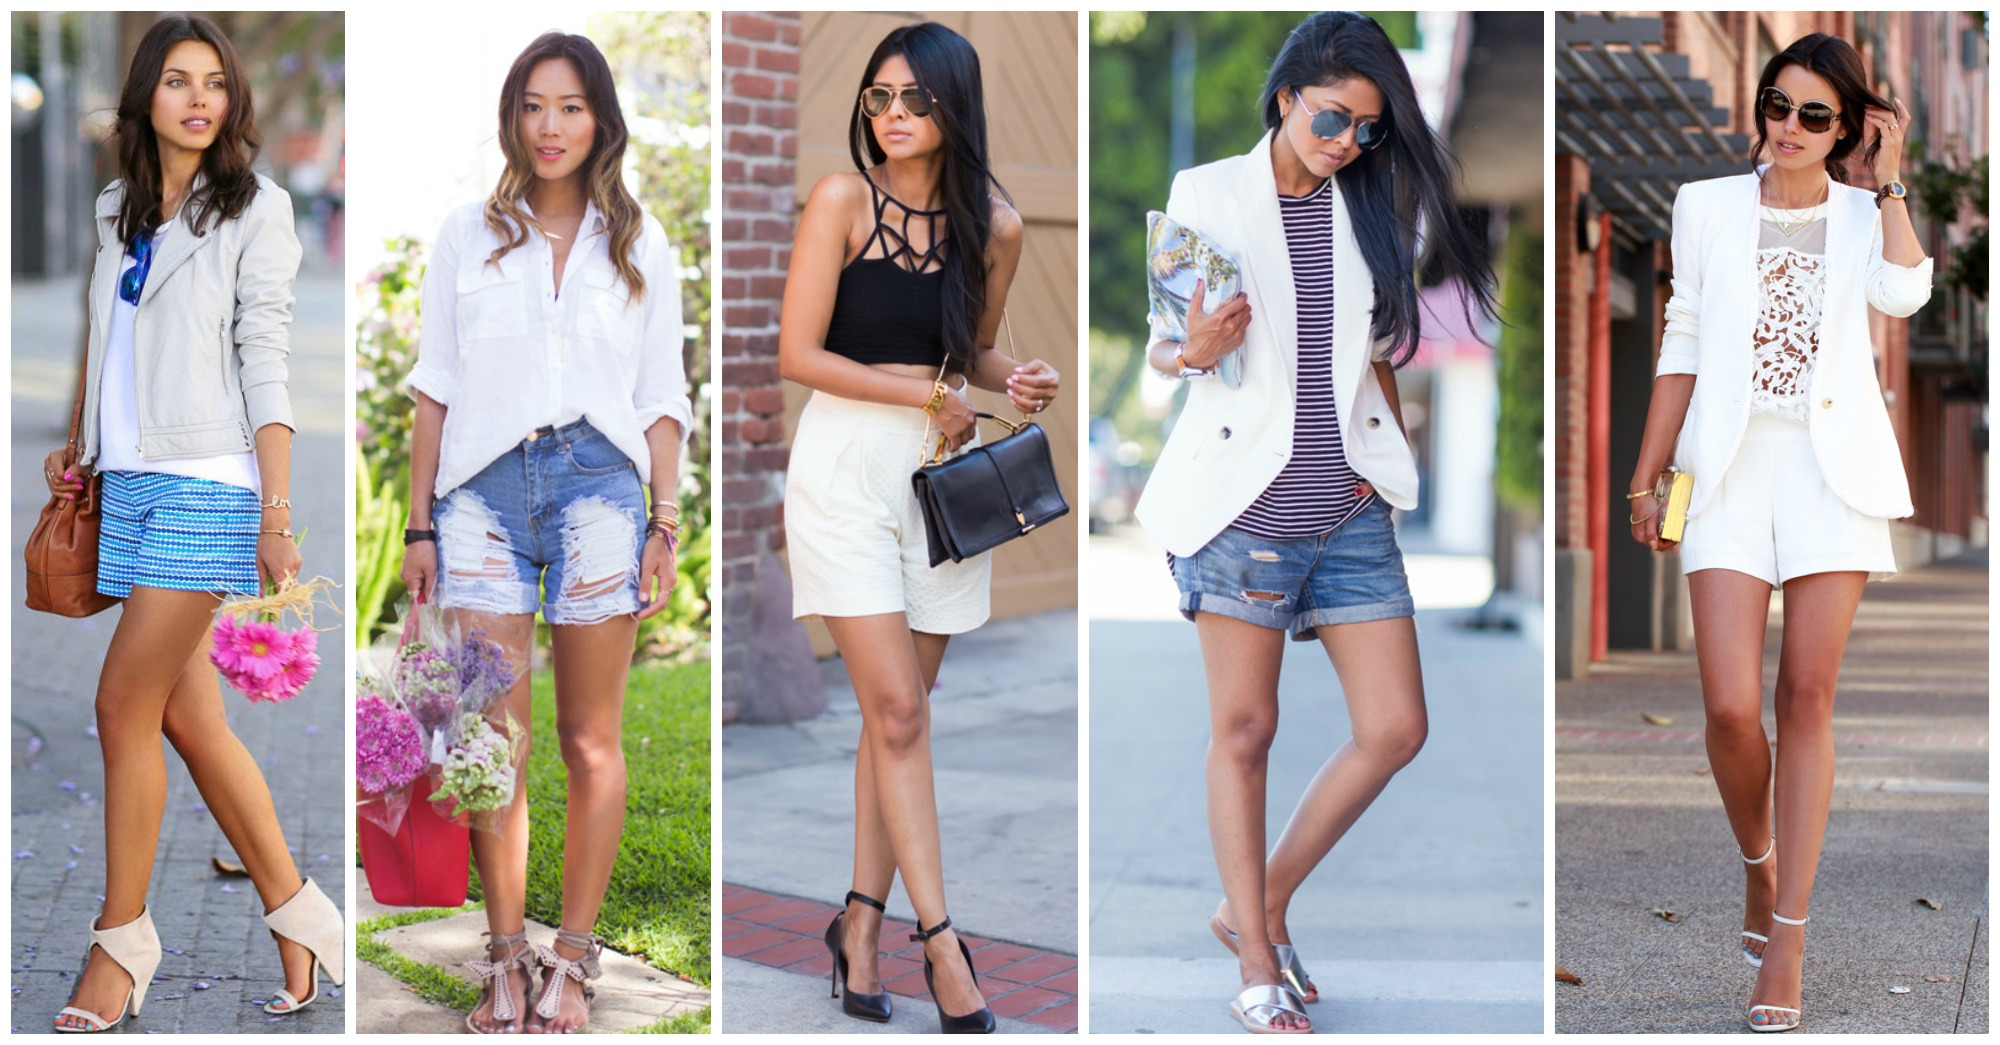 10 Fashionable Outfit Ideas to Style Shorts This Season